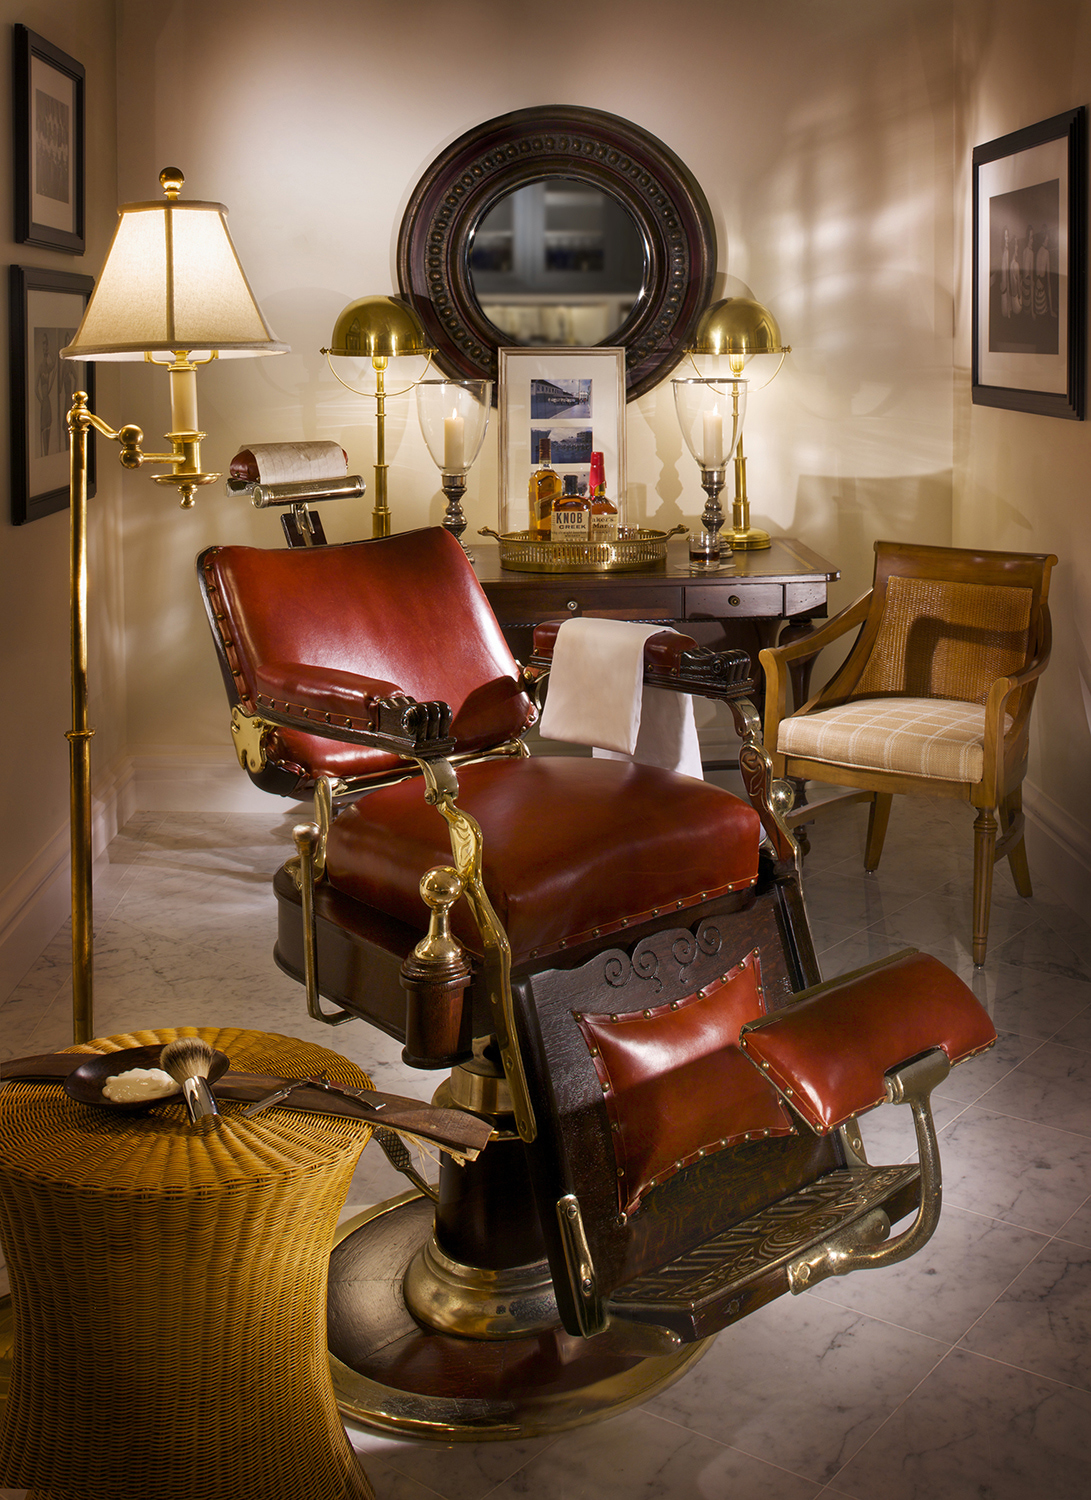 Barber Girl Photos: Antique Barber Chair